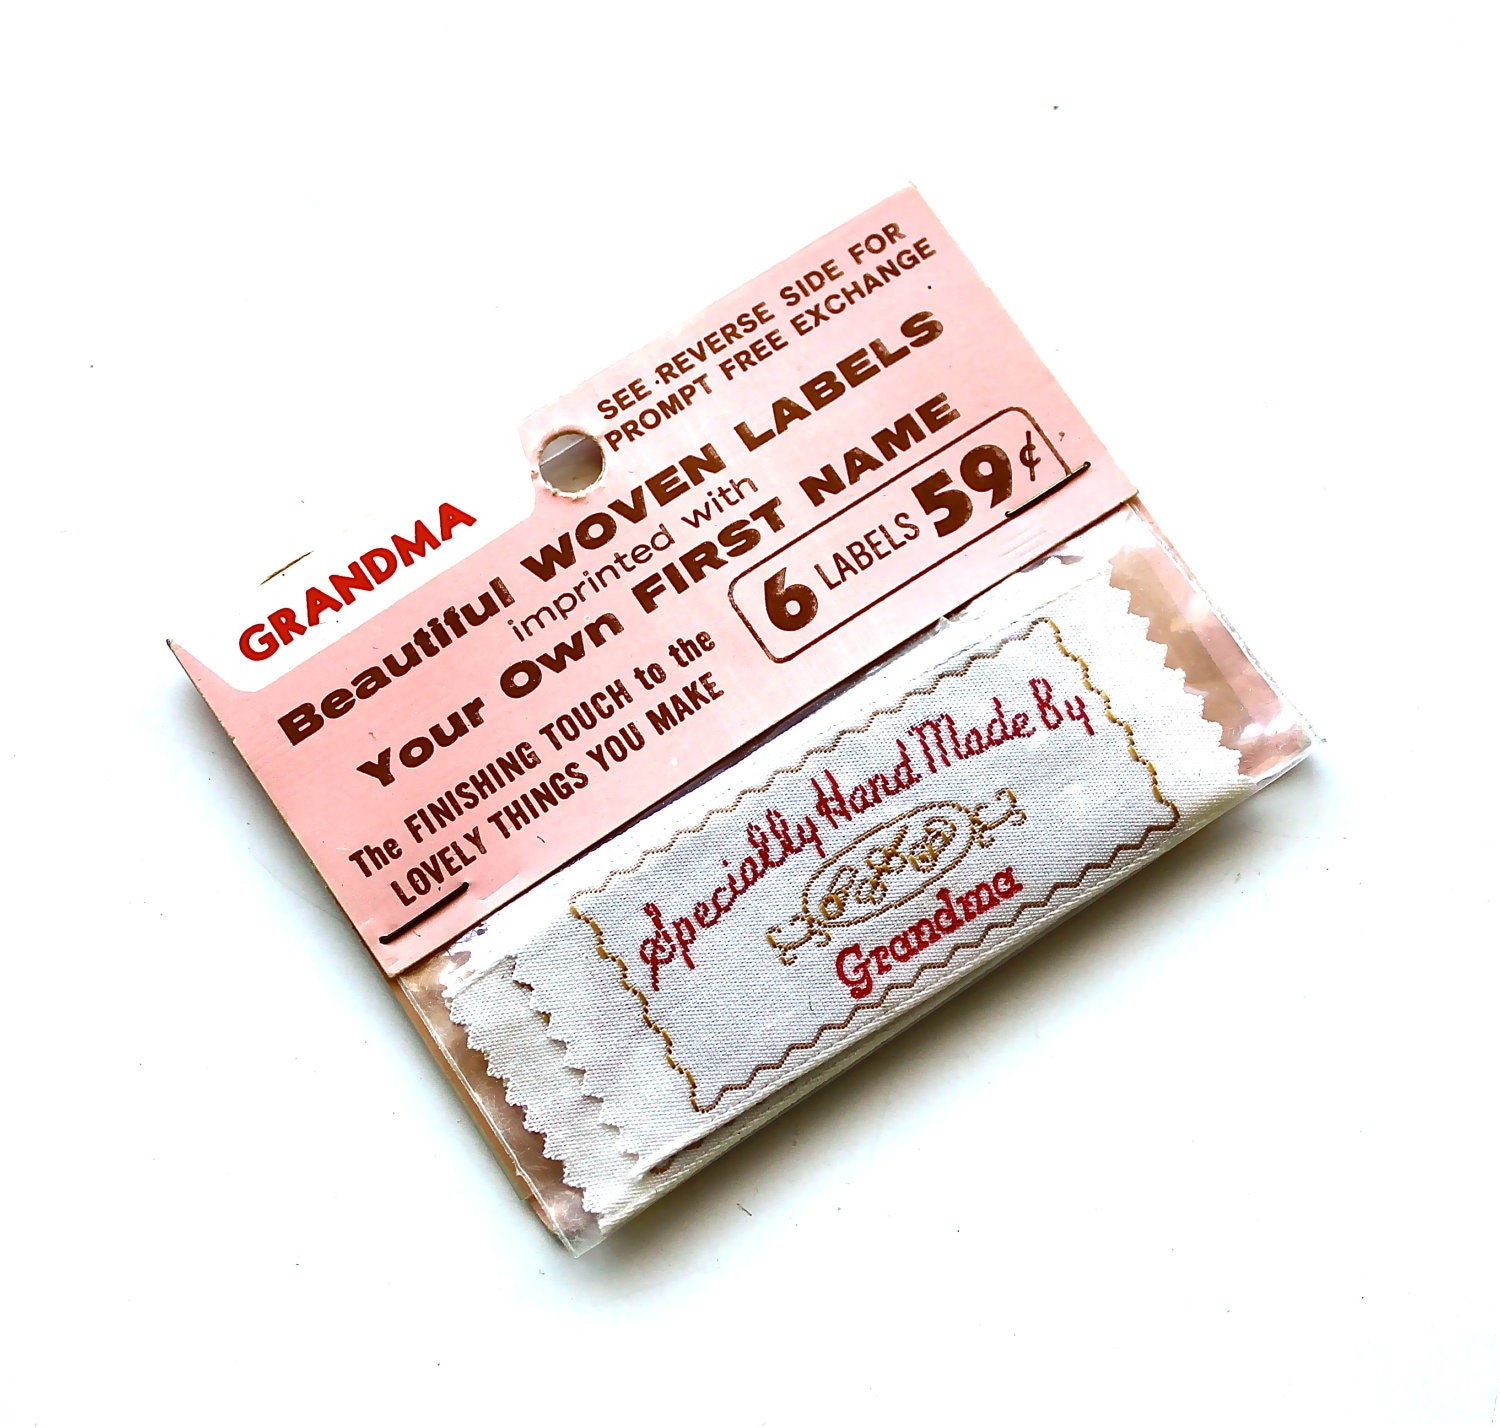 handmade labels for sewing sewn by vintage sewing labels by becaruns on etsy 1900